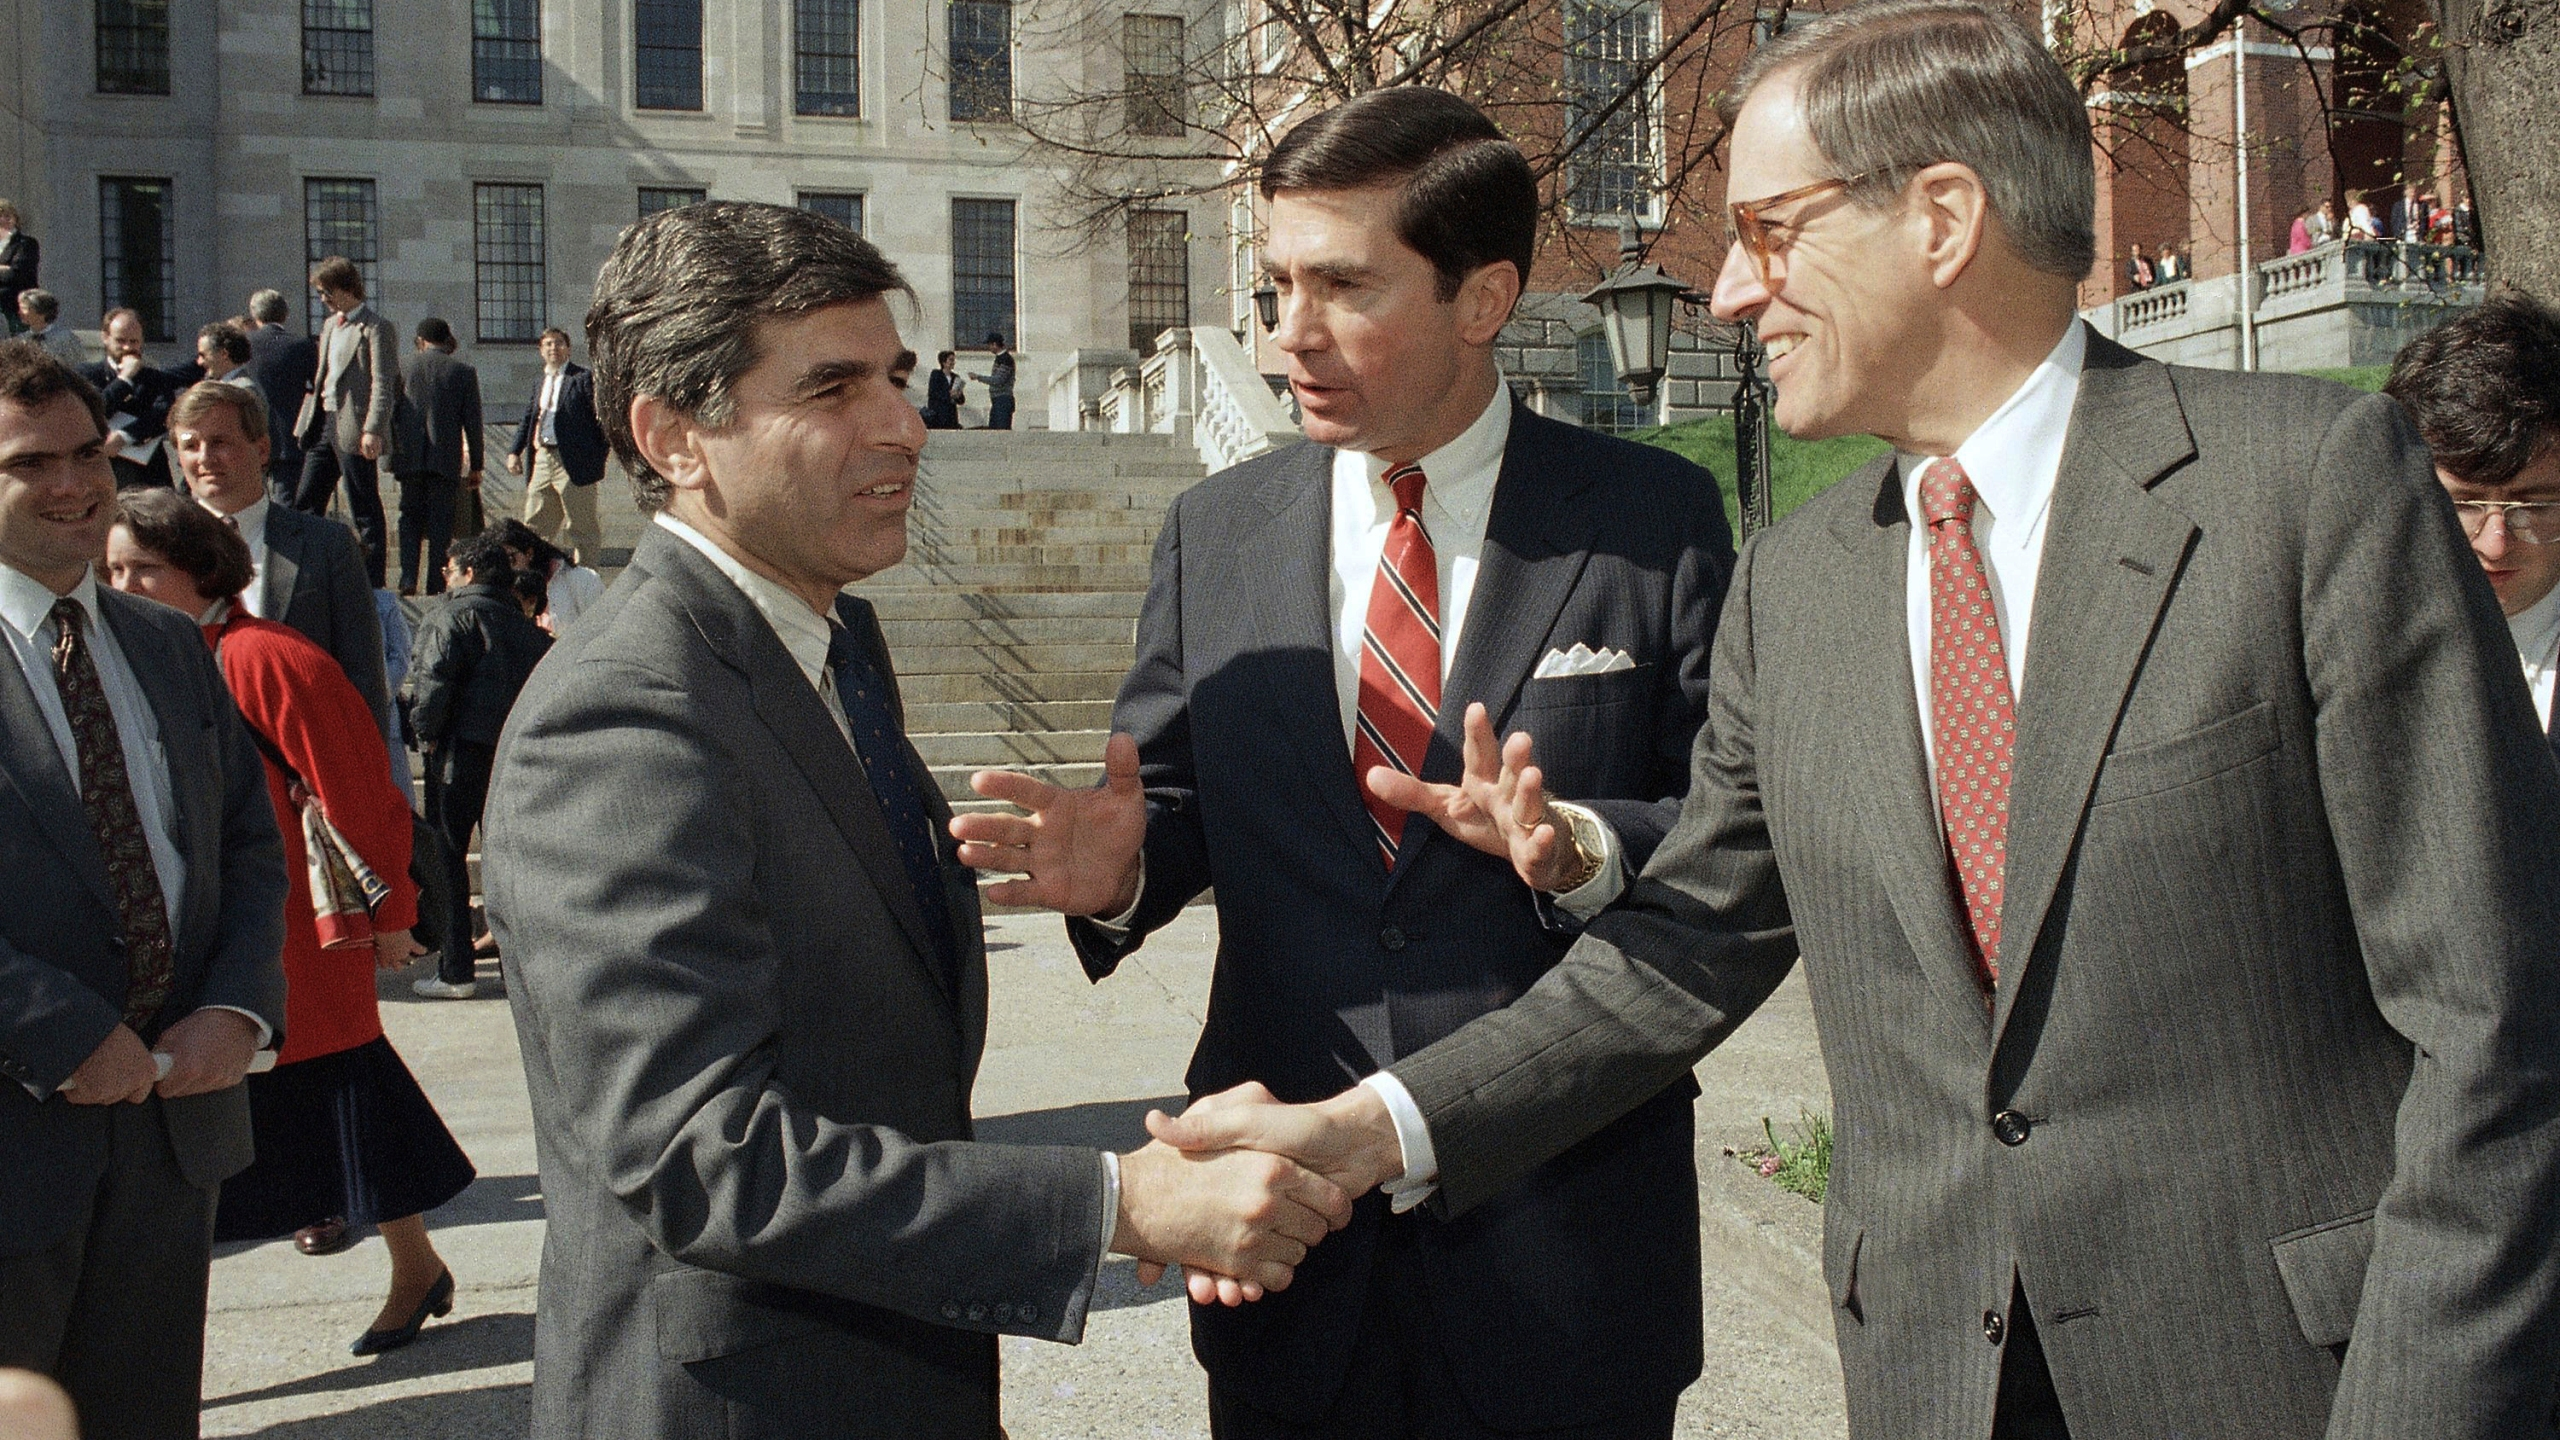 In this April 27, 1987, file photo, Massachusetts Governor Michael Dukakis, left, shakes the hands of former Delaware Governor Pierre Du Pont, right as former Virginia Governor Charles S. Robb looks on, after both men attended the Jobs for Bay State Grads program in Boston. (AP Photo/Jim Shea, File)